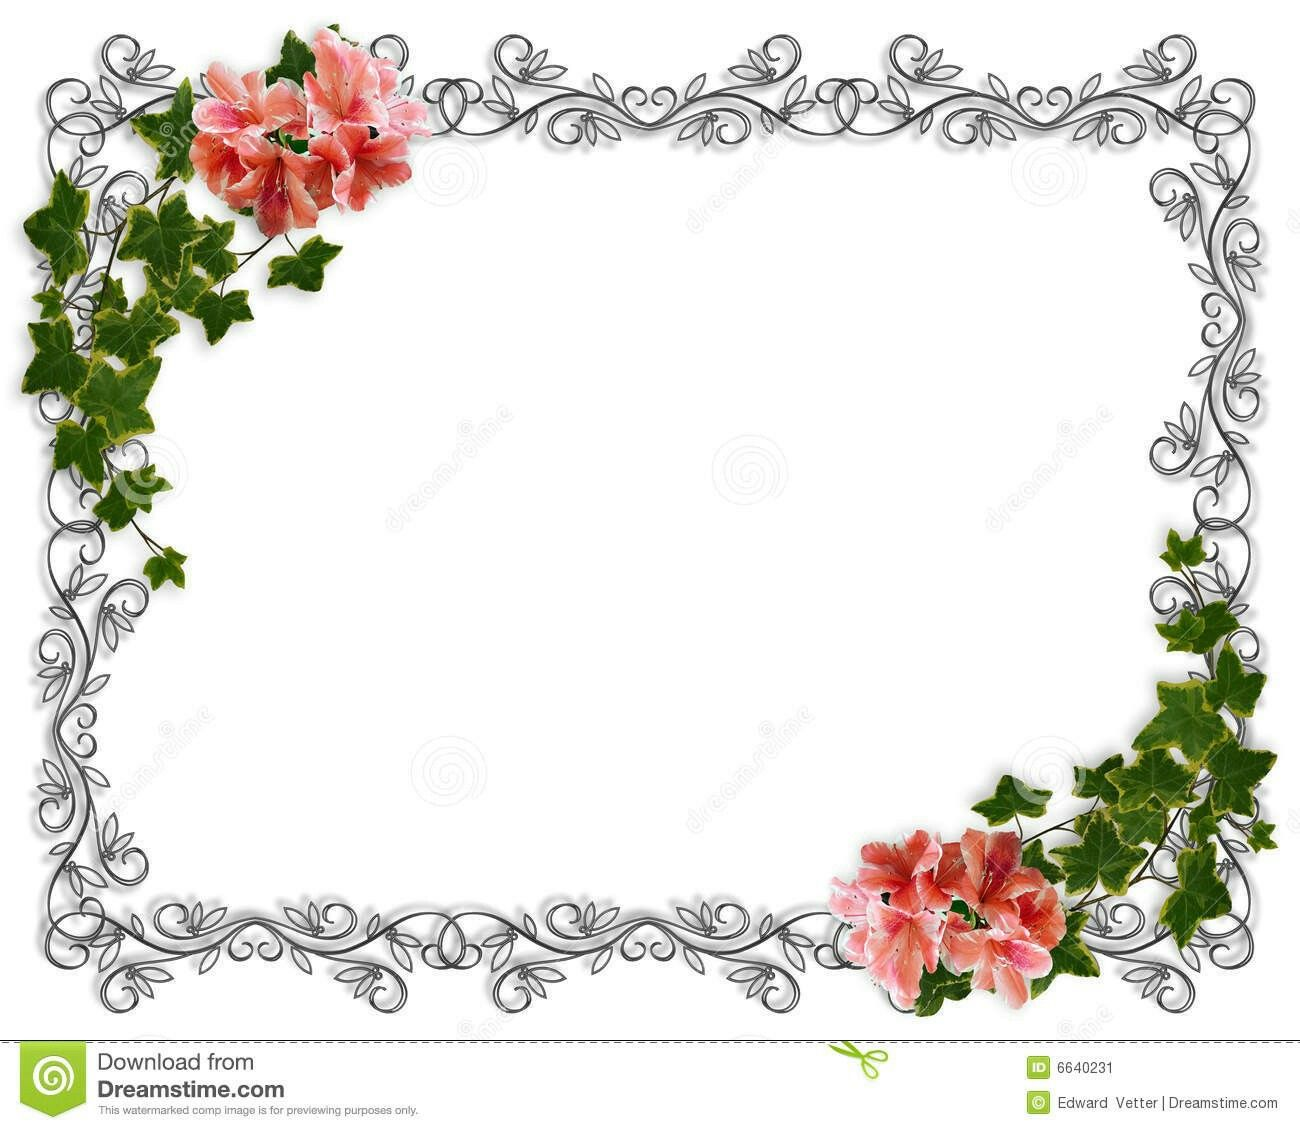 Wedding And Certificate Floral Border Border Clipart